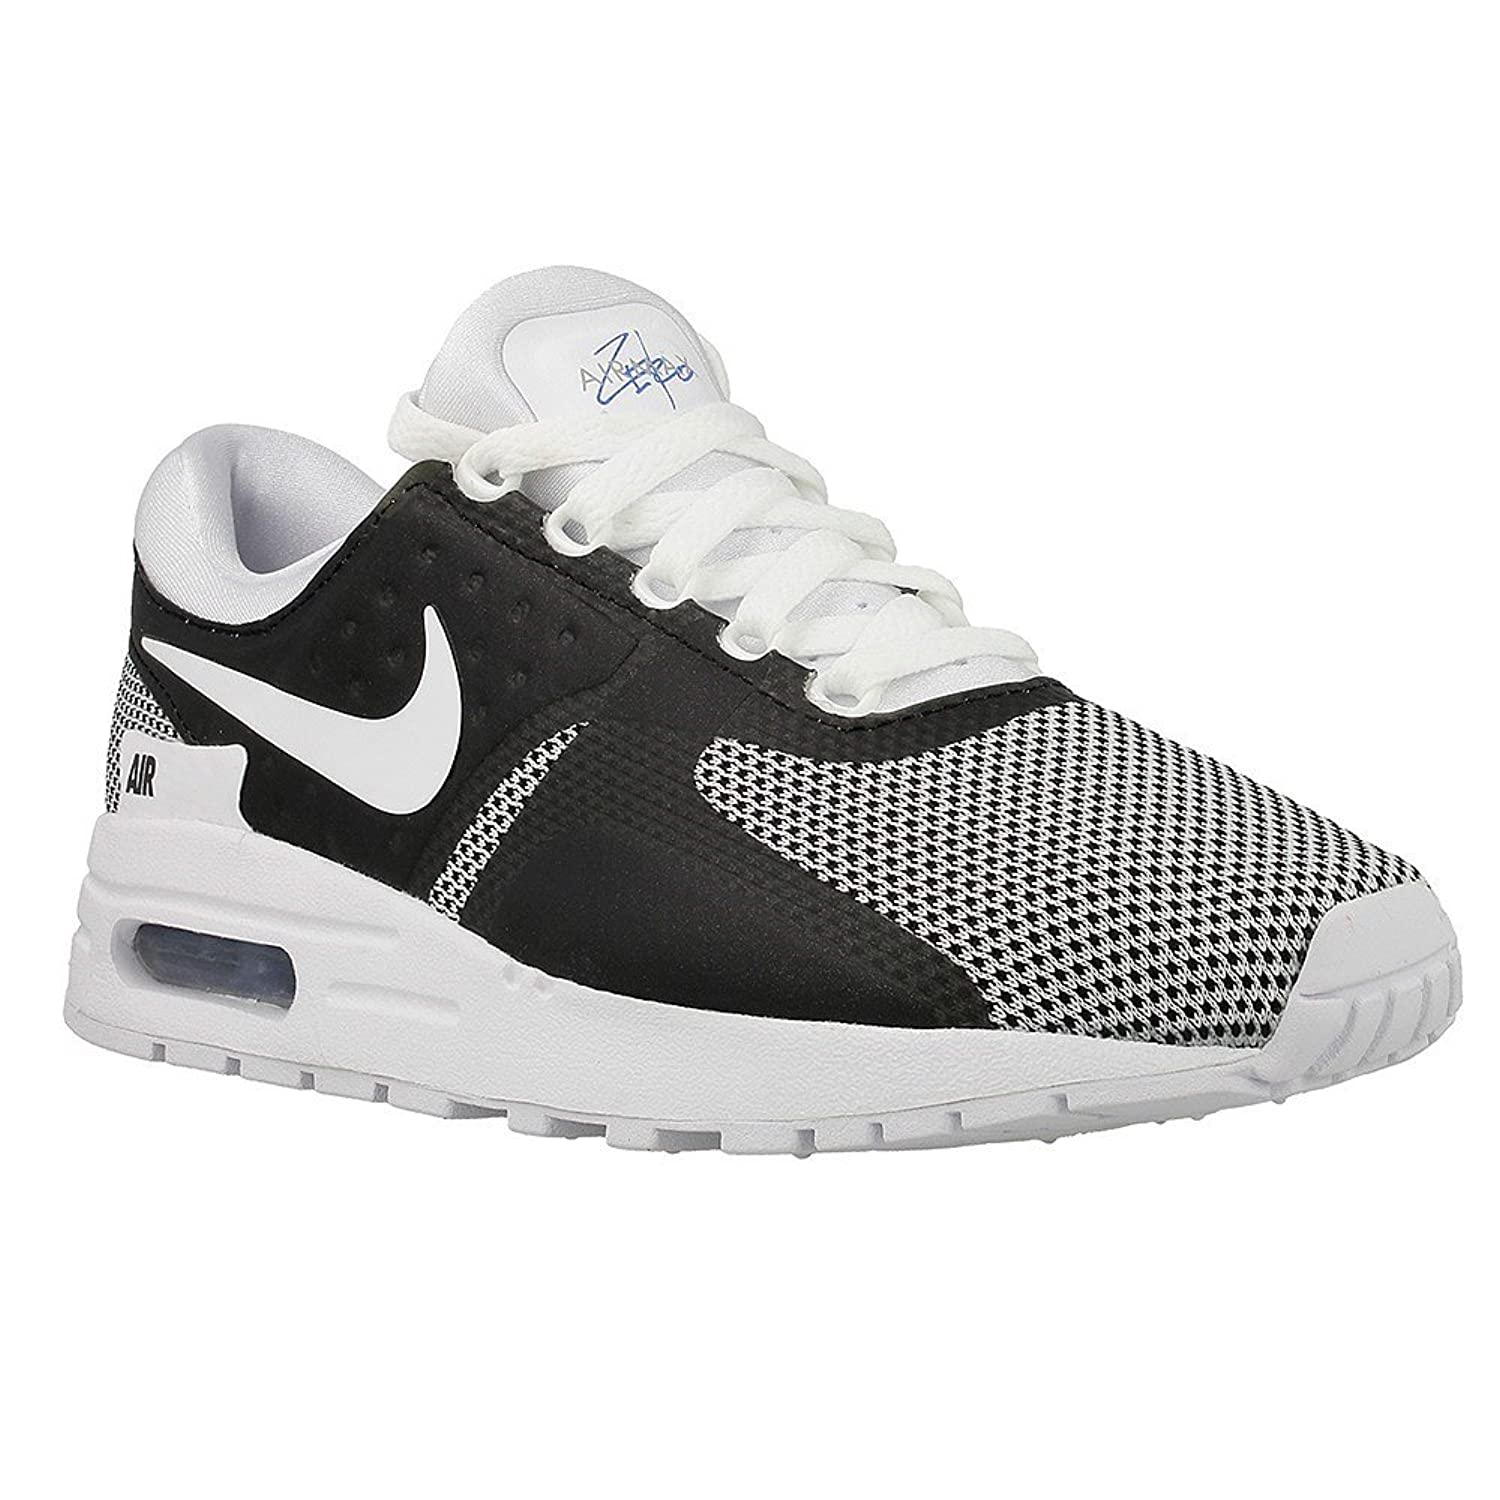 [Nike] Air Max Zero Essential GS Running Trainers 881224 Sneakers Shoes (Uk 5.5 Us 6Y Eu 38.5, white obsidian soar 101)